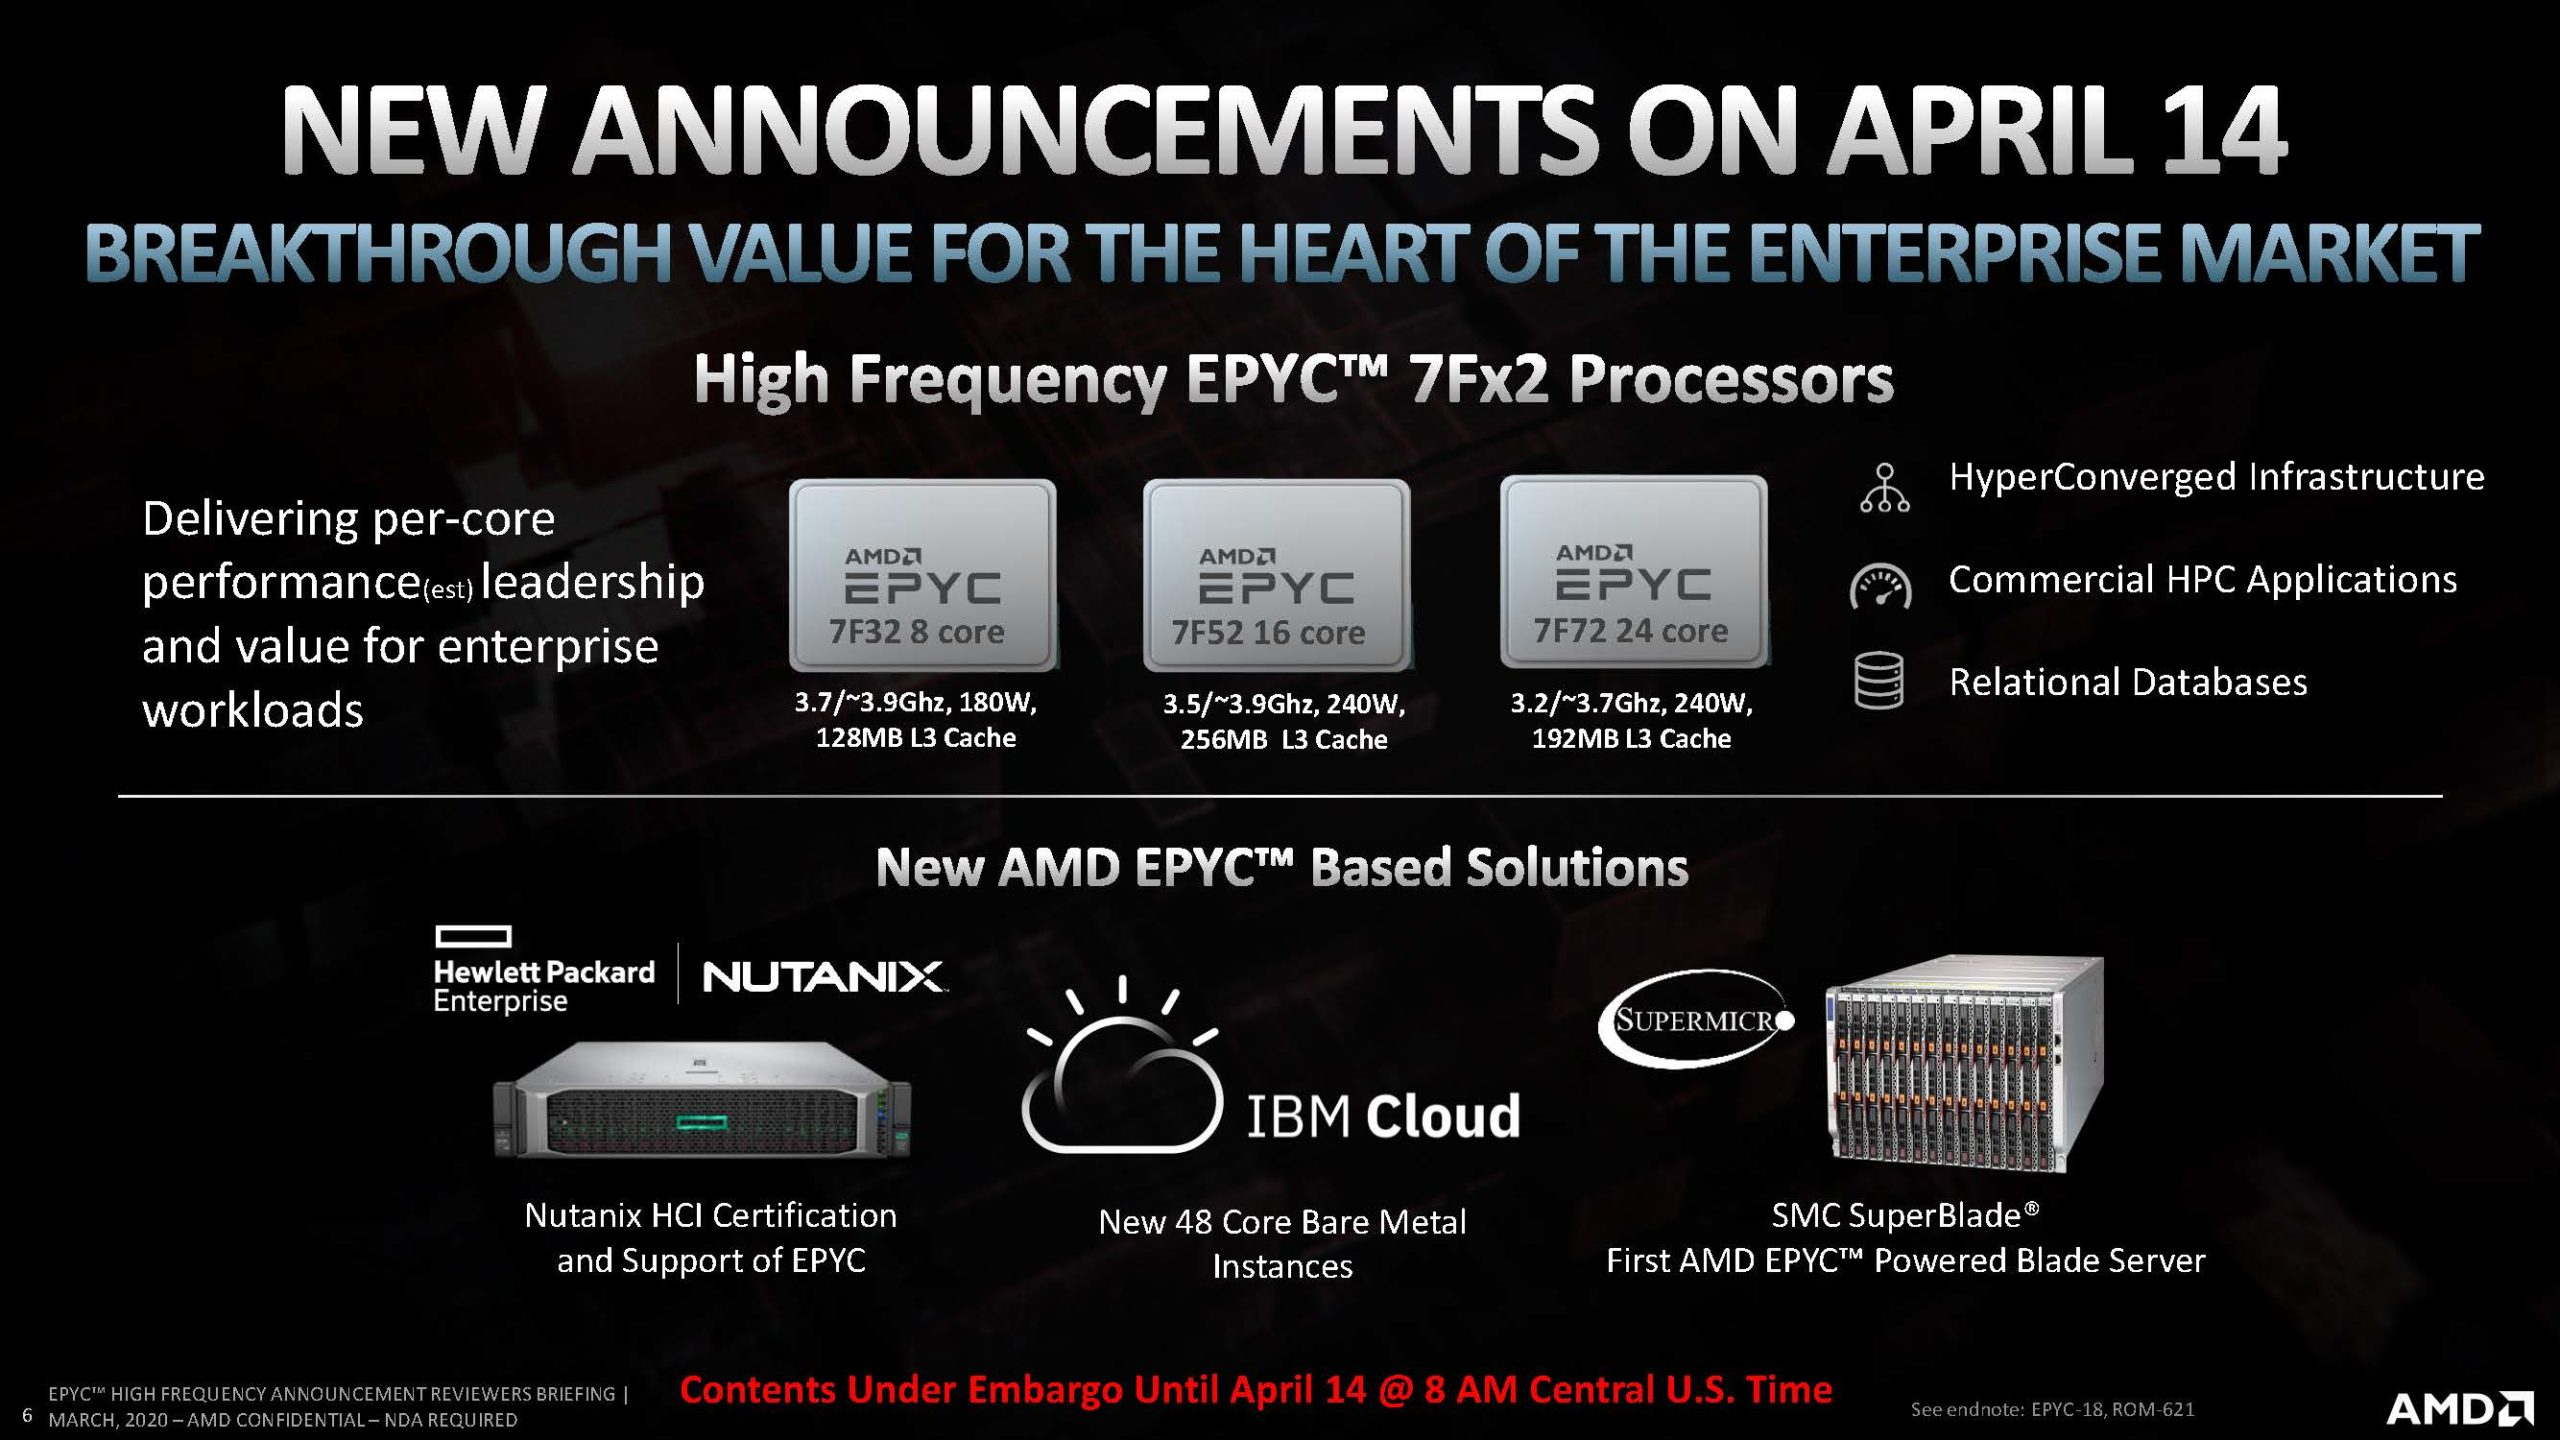 AMD EPYC 7Fx2 Launch Slides Series Overview